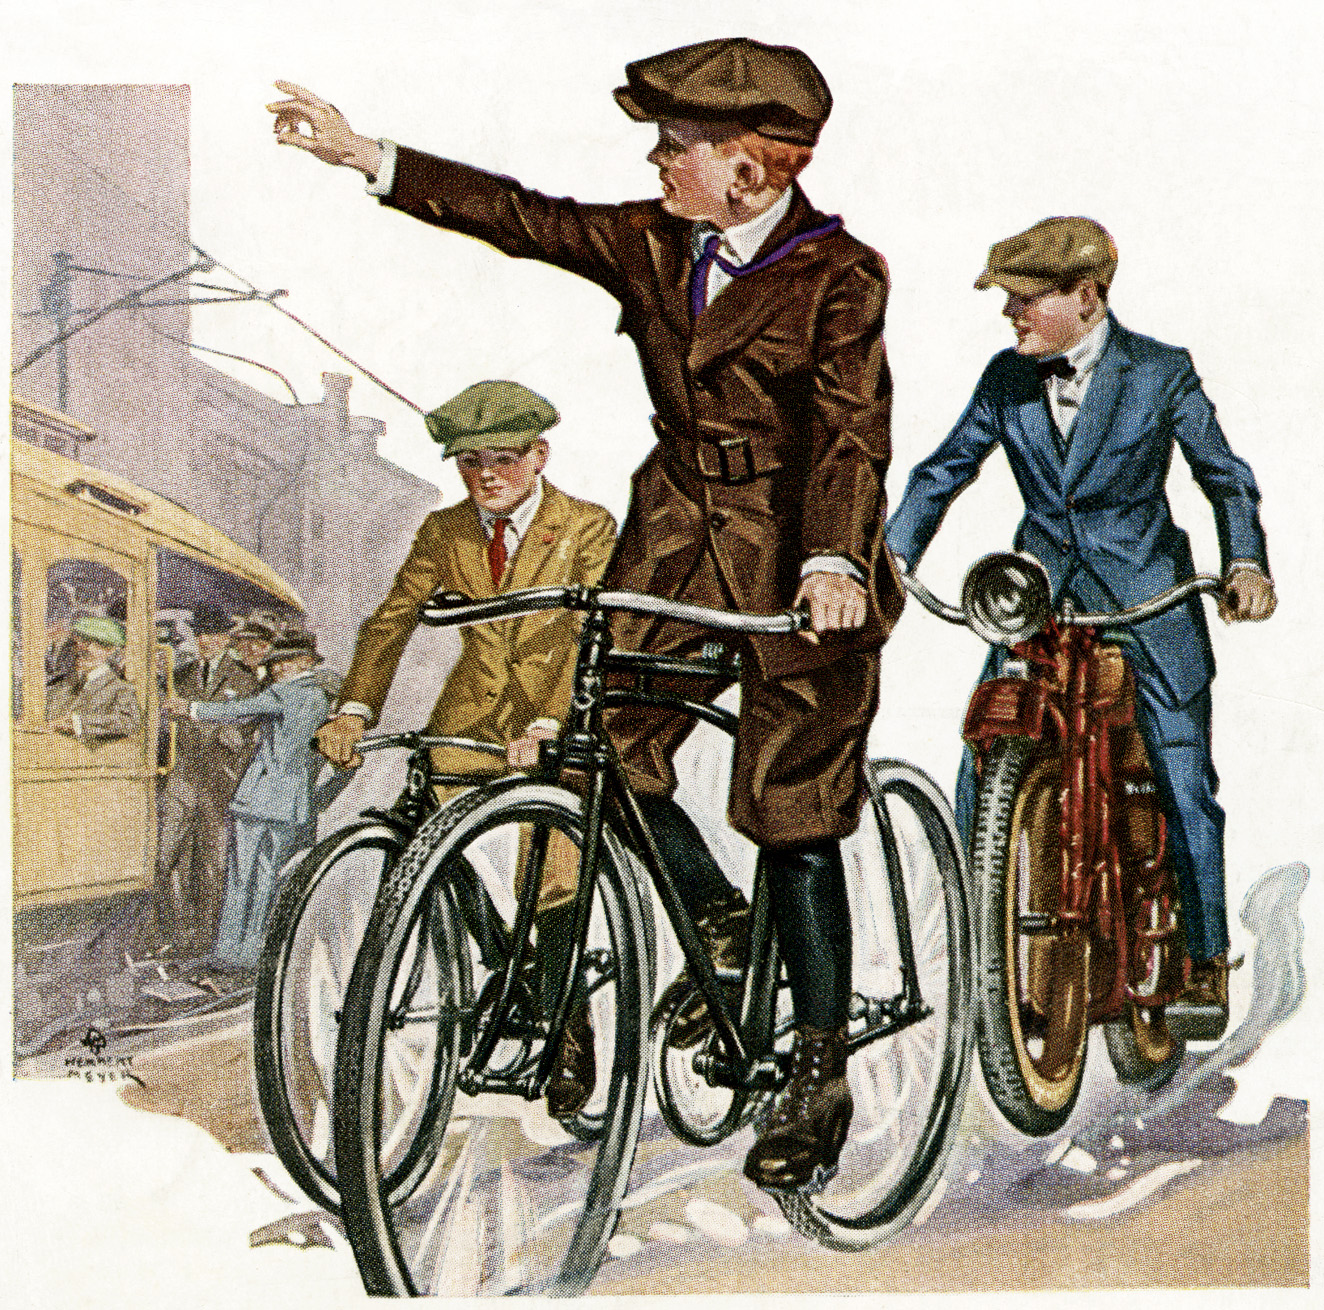 vintage bicycle image, free printable, free vintage clipart, free vintage image, old picture boy riding bike, antique bicycles, vintage masculine image, free public domain image, free graphic design resource